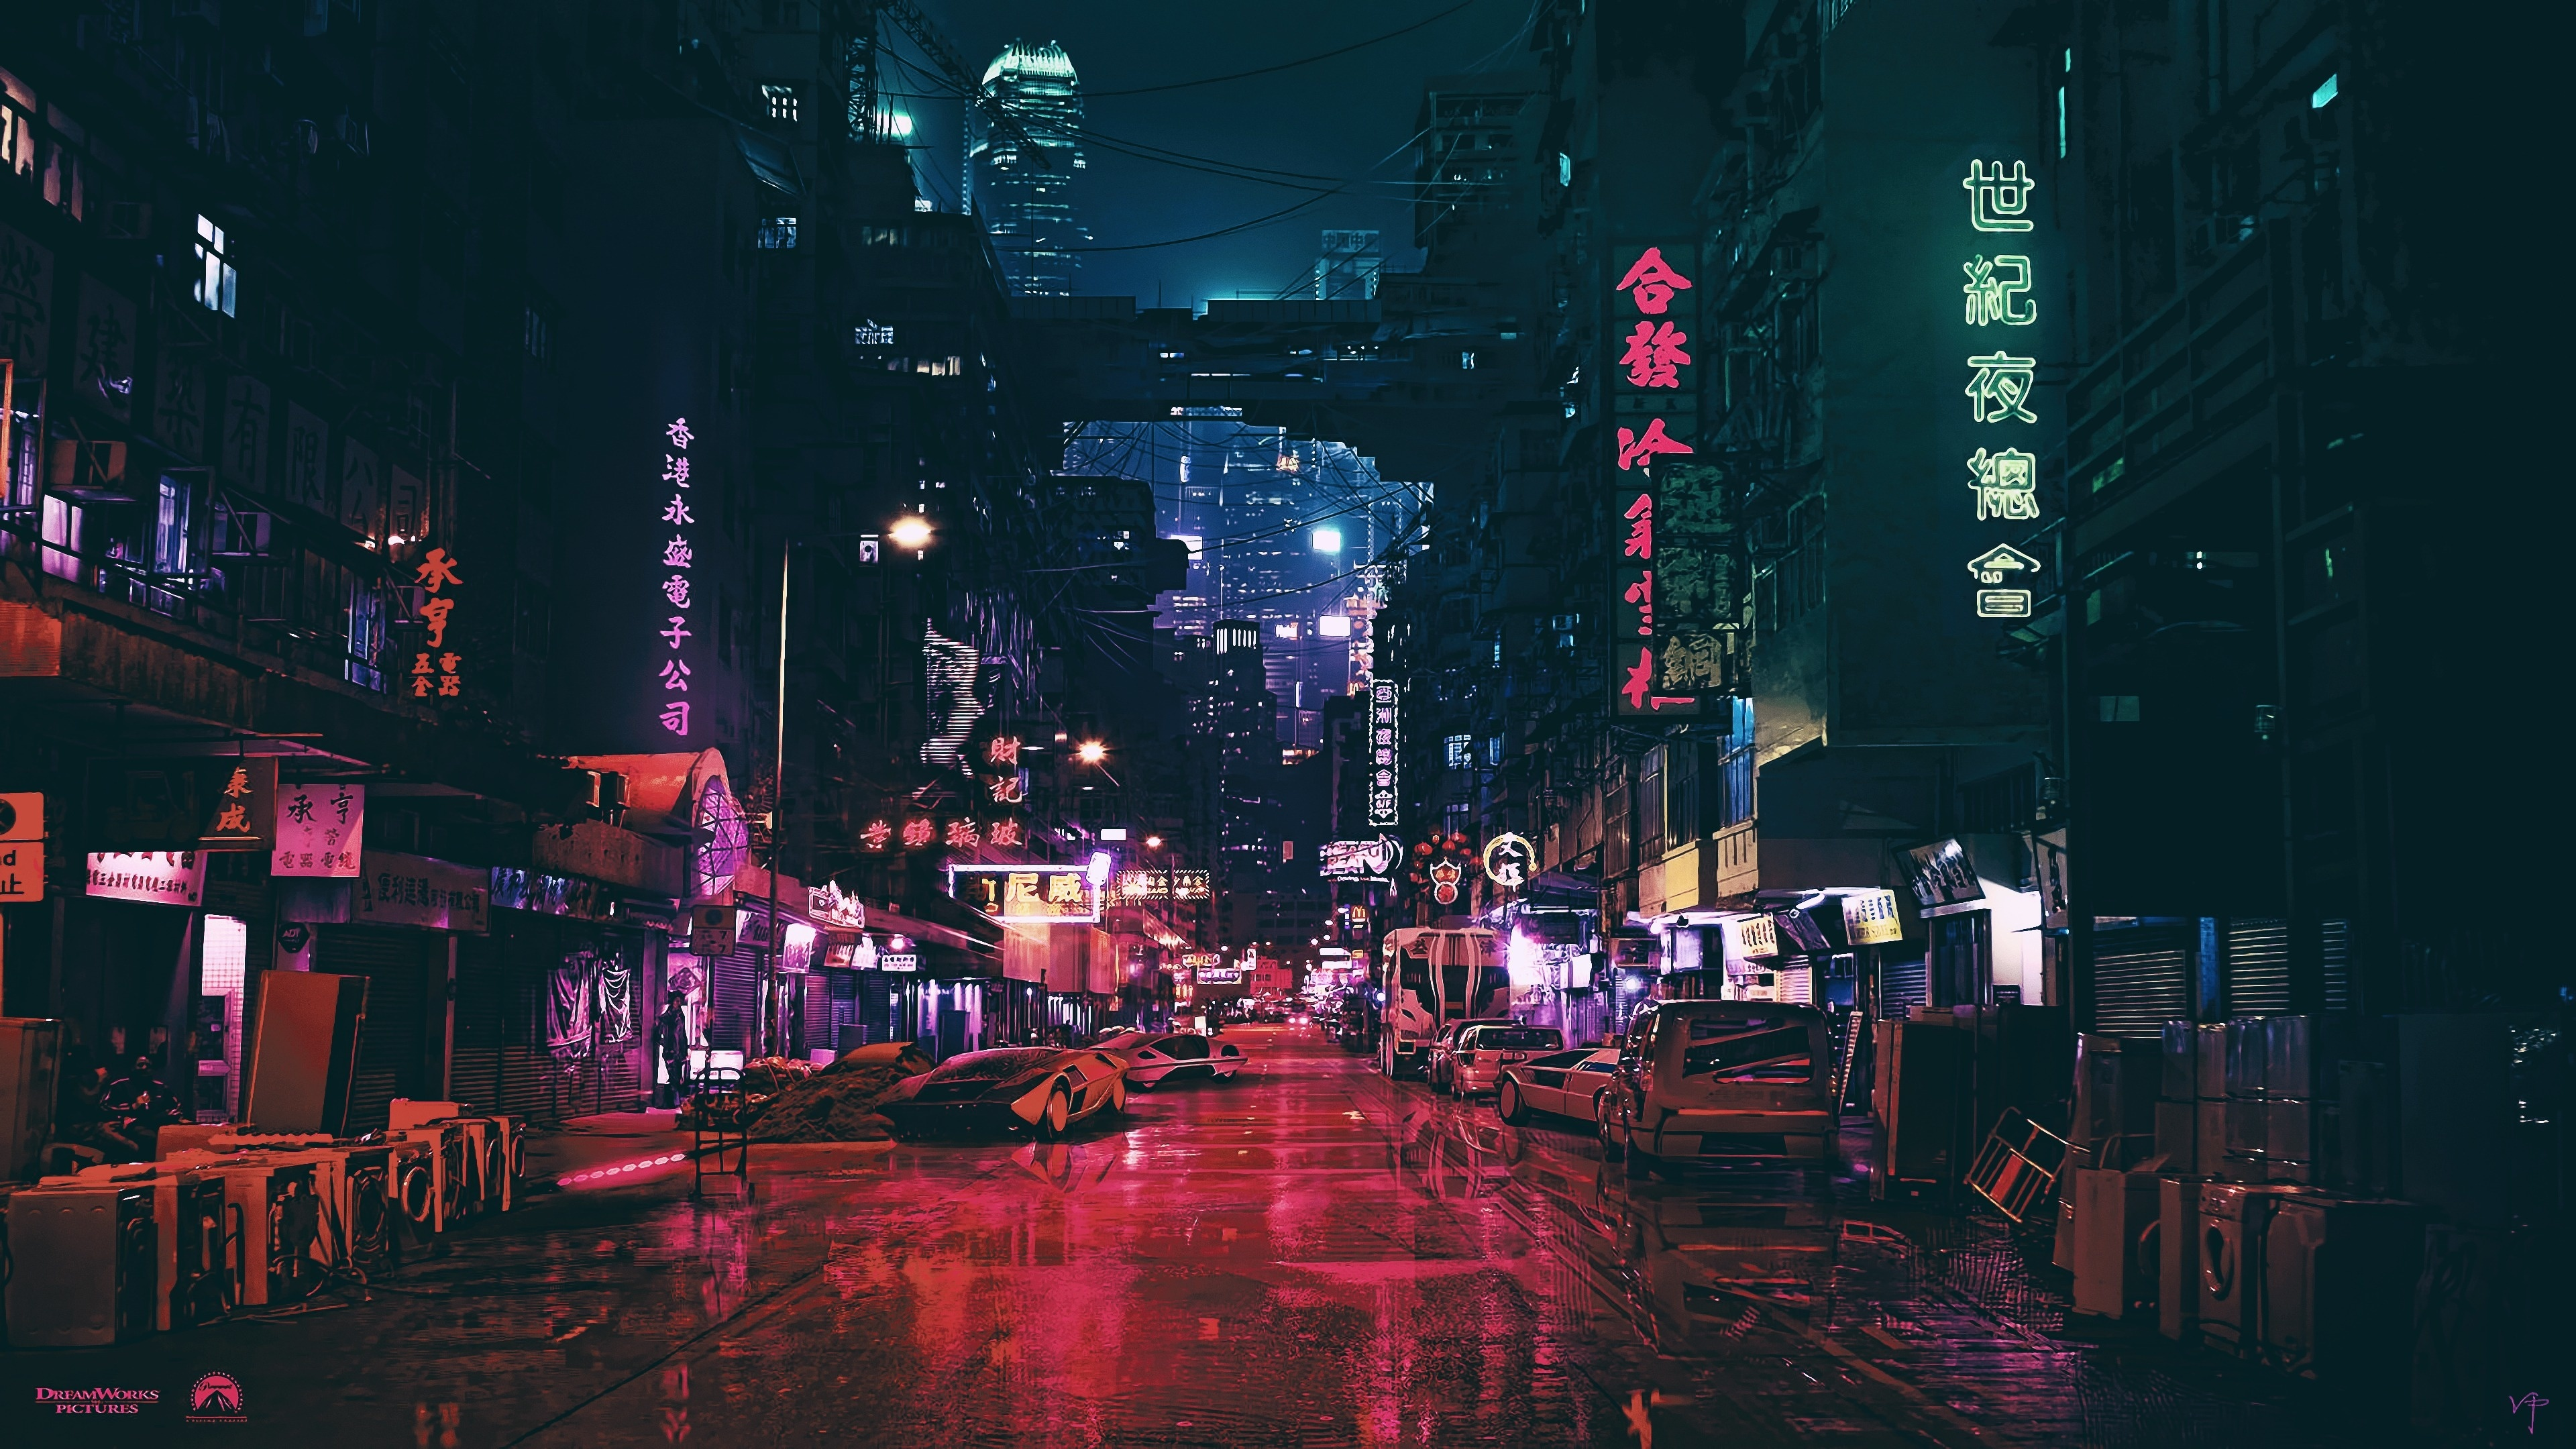 Download 3840x2400 Wallpaper Ghost In The Shell City Movie